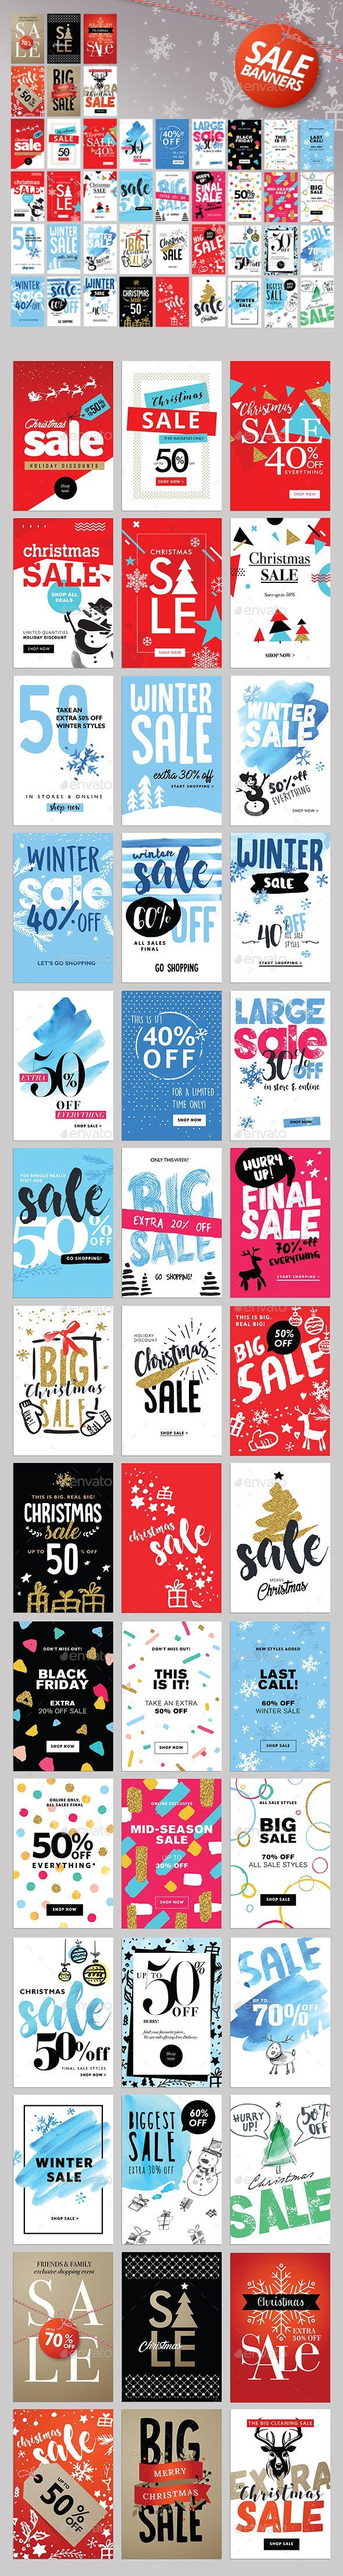 Set of Winter Mobile Sale Banners Template PSD, Transparent PNG, Vector EPS, AI Illustrator